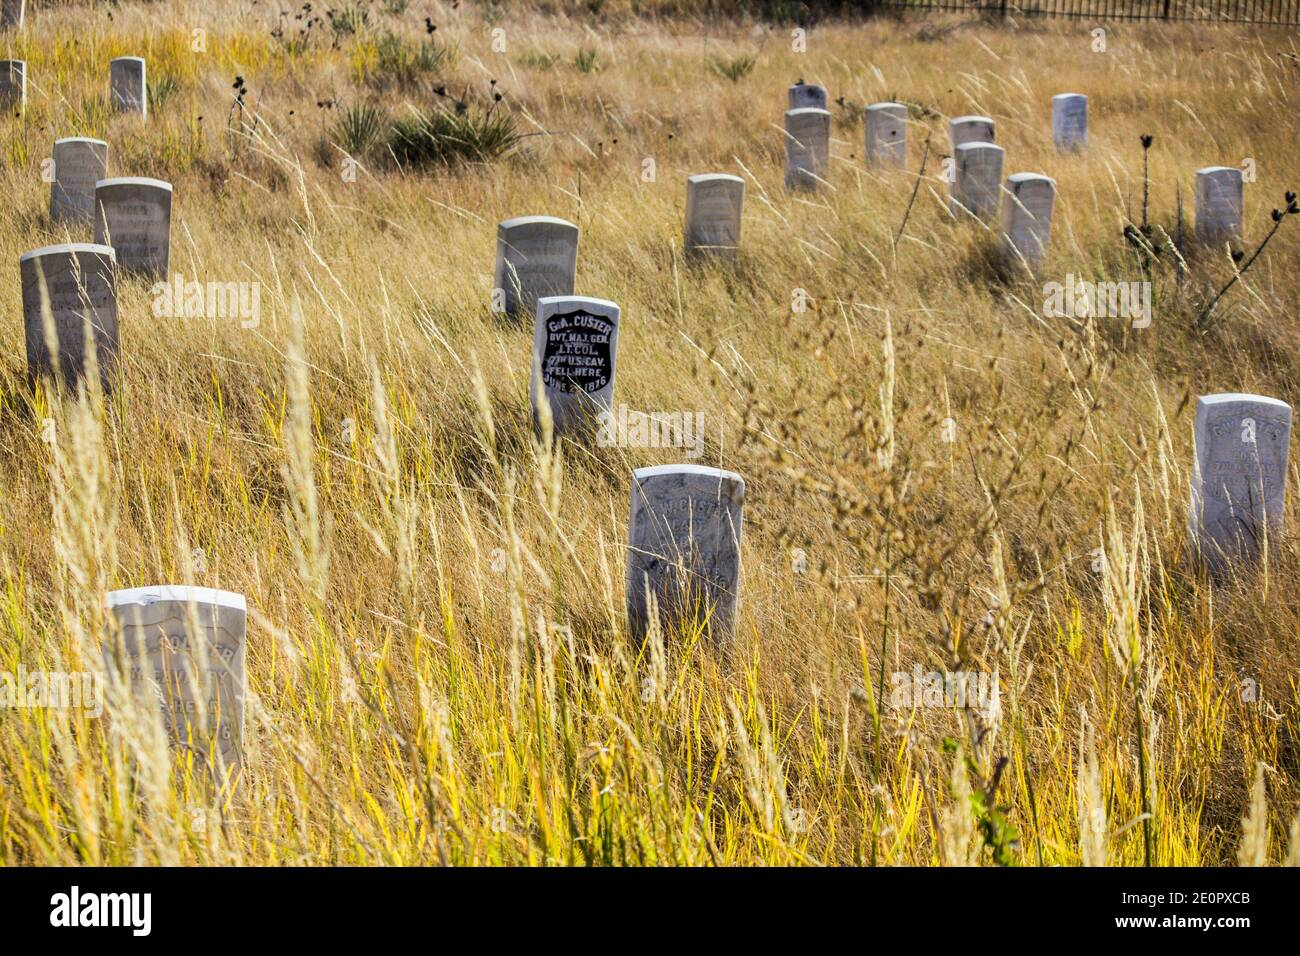 Custer's headstone among others. Little Bighorn Battlefield National Monument. Crow Agency, Montana, U. S. A. , North America. Stock Photo